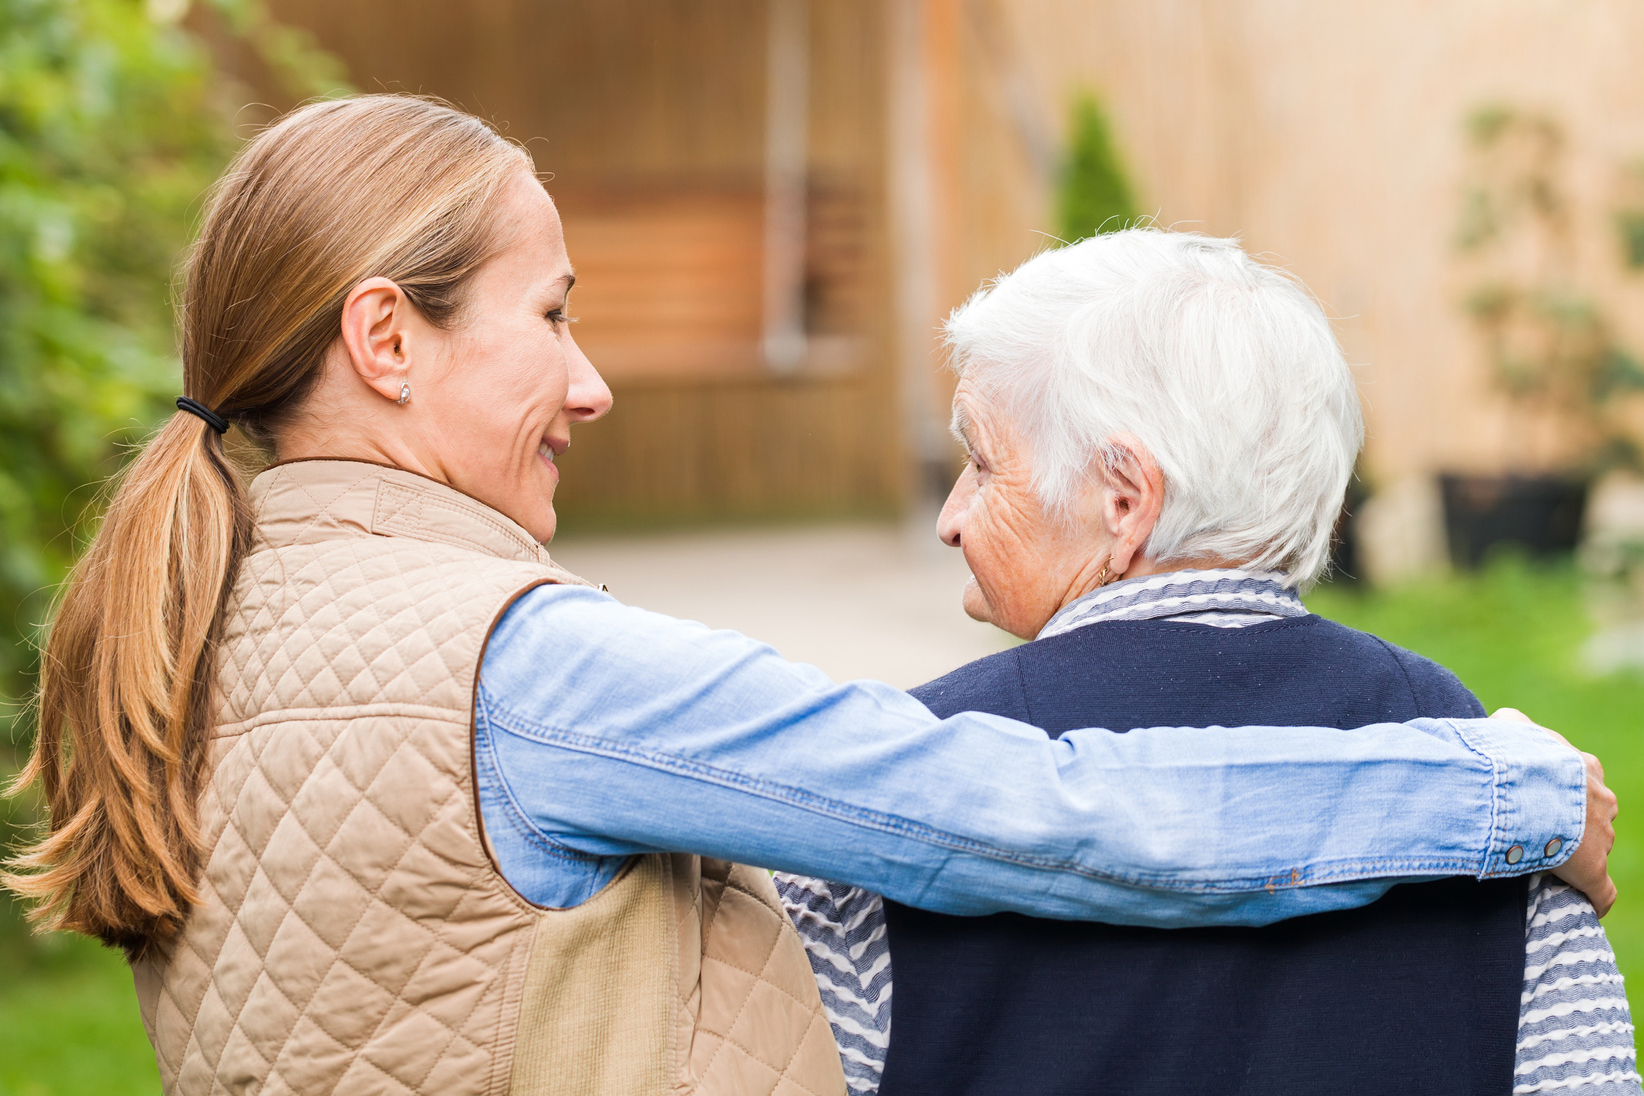 5 Tips for Transitioning a Loved One to Private Memory Care